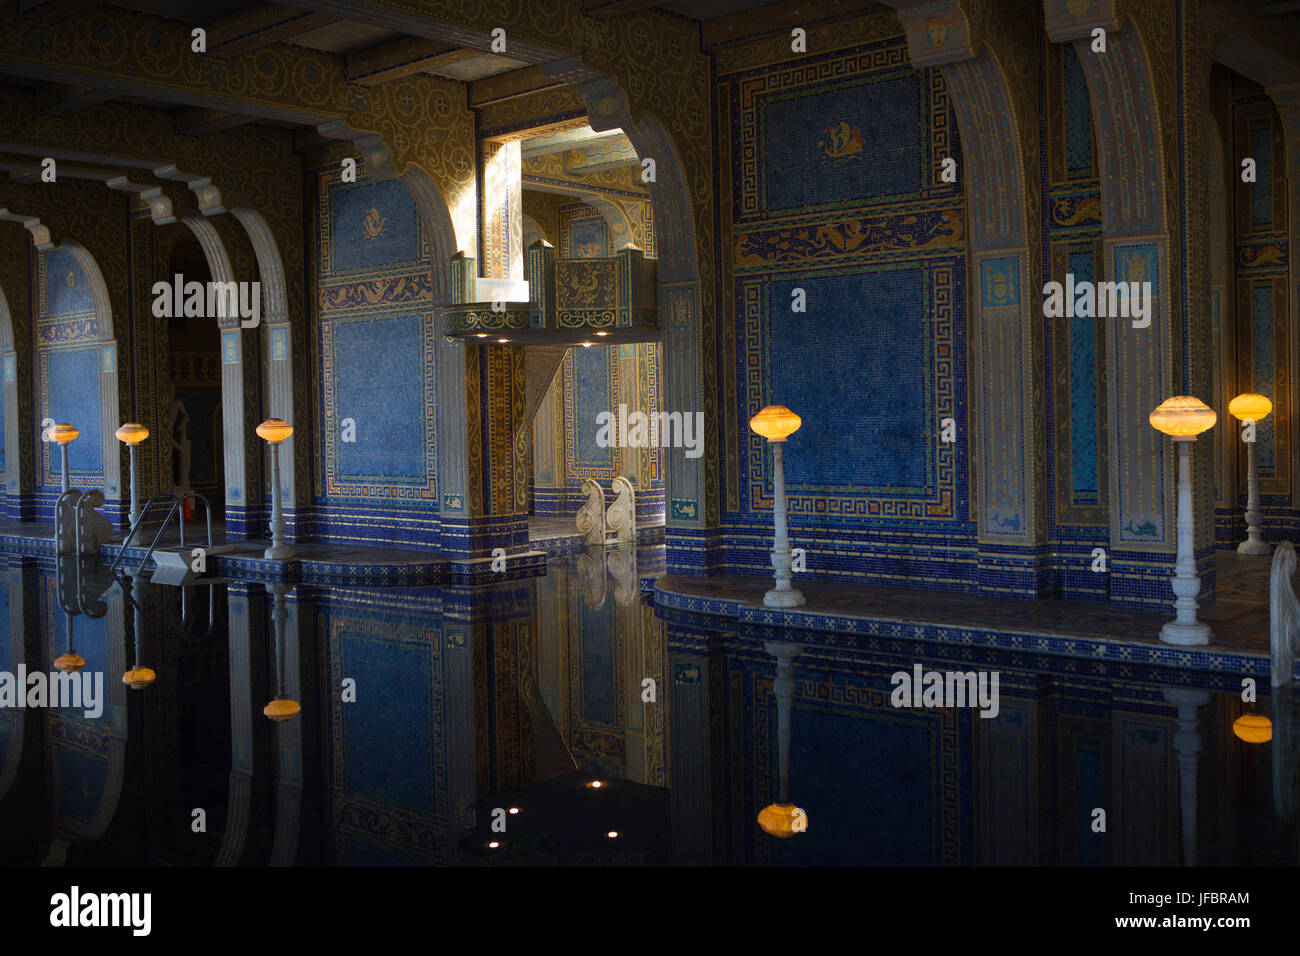 The Roman Pool at Hearst Castle, styled after an ancient Roman bath, is tiled with mosaic patterns in blue and gold, - Stock Image